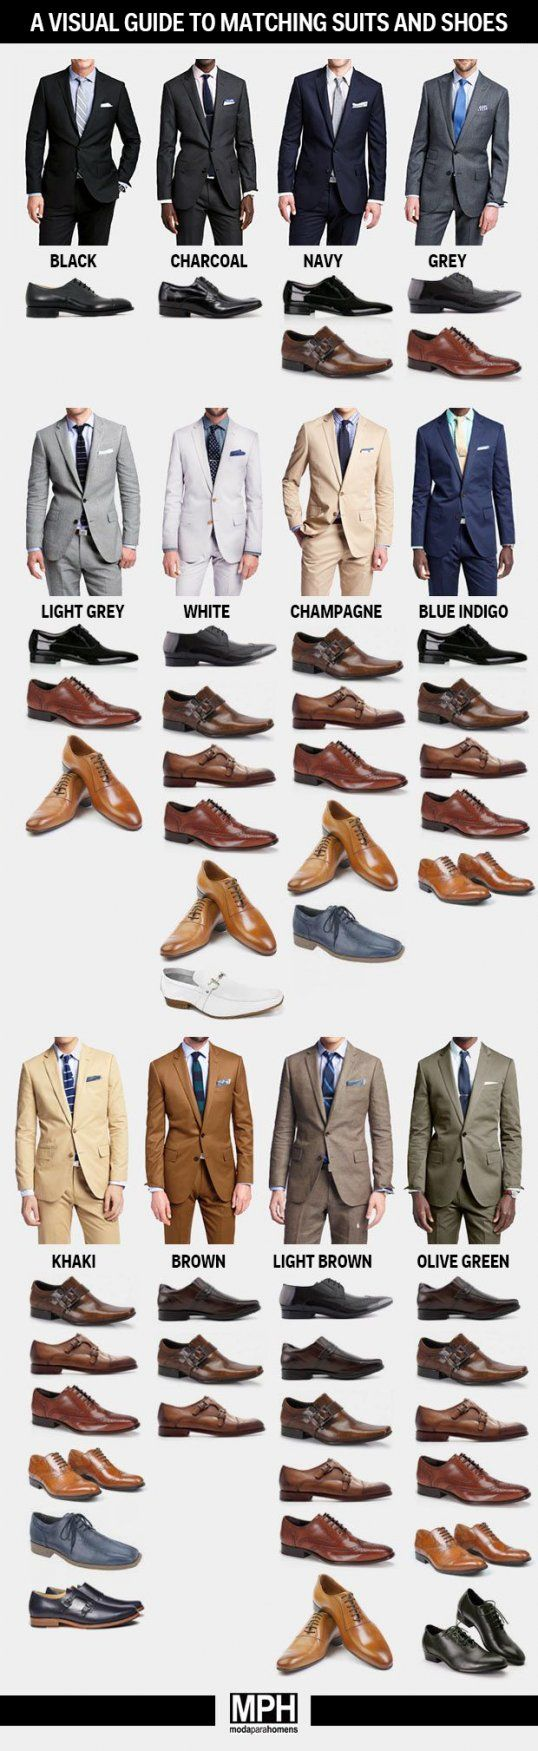 SuitsAndPantsGuide_English                                                                                                                                                                                 More